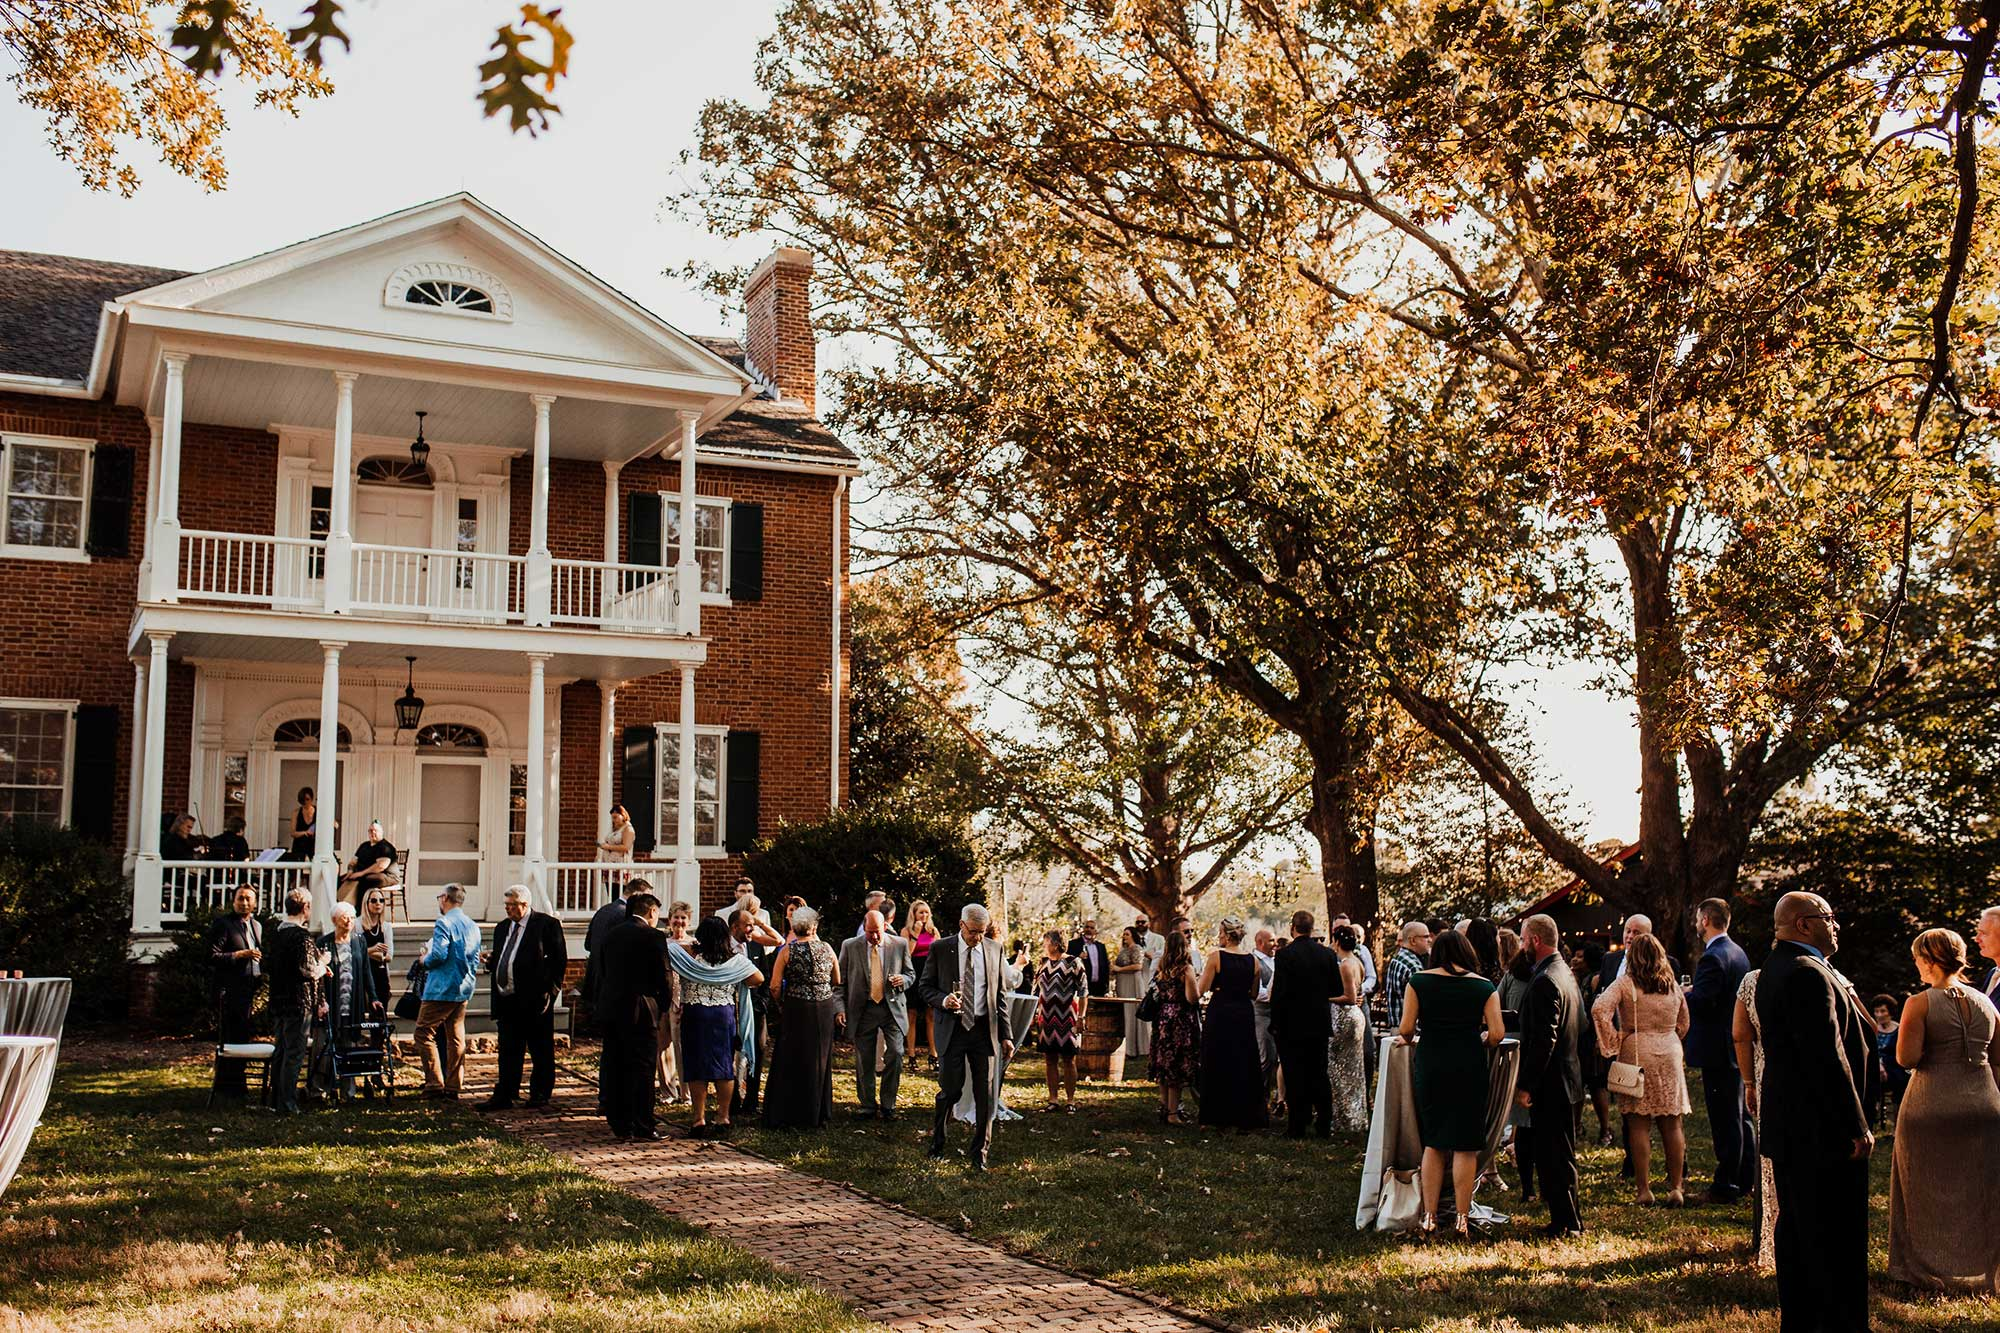 LGBTQ Louisville Kentucky Wedding at Hermitage Farm Crystal Ludwick Photo guests at pre-wedding reception